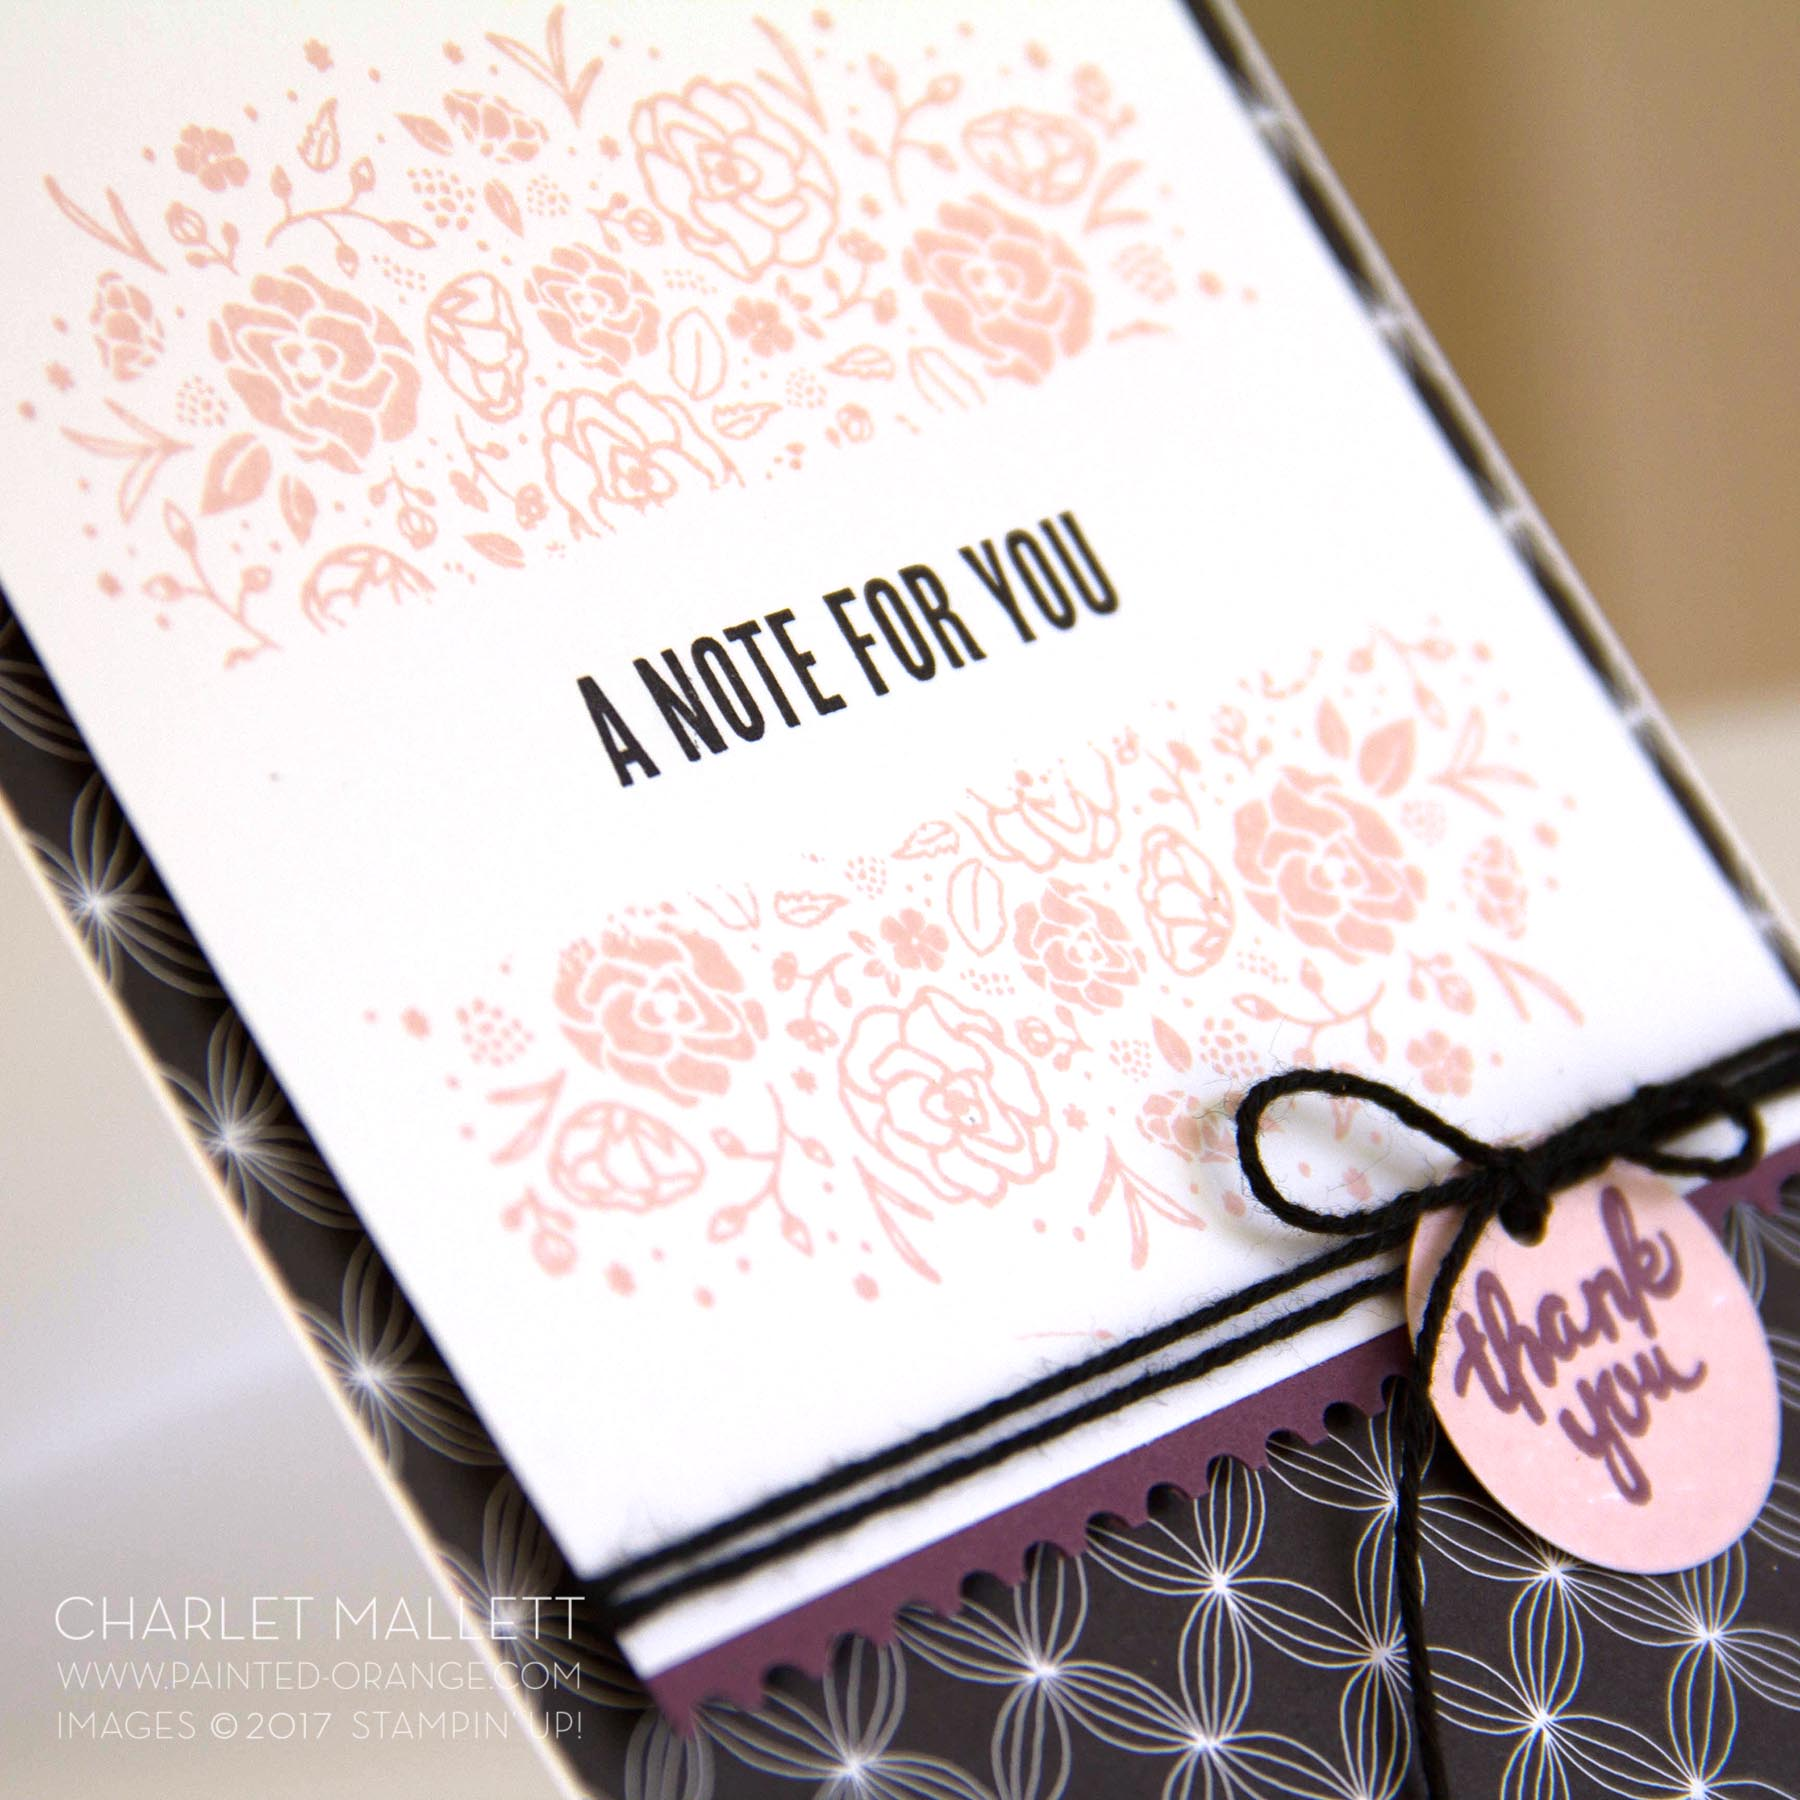 Wood Words - A Note For You card, Charlet Mallett - Stampin' Up! Ticket Tear border bunch.